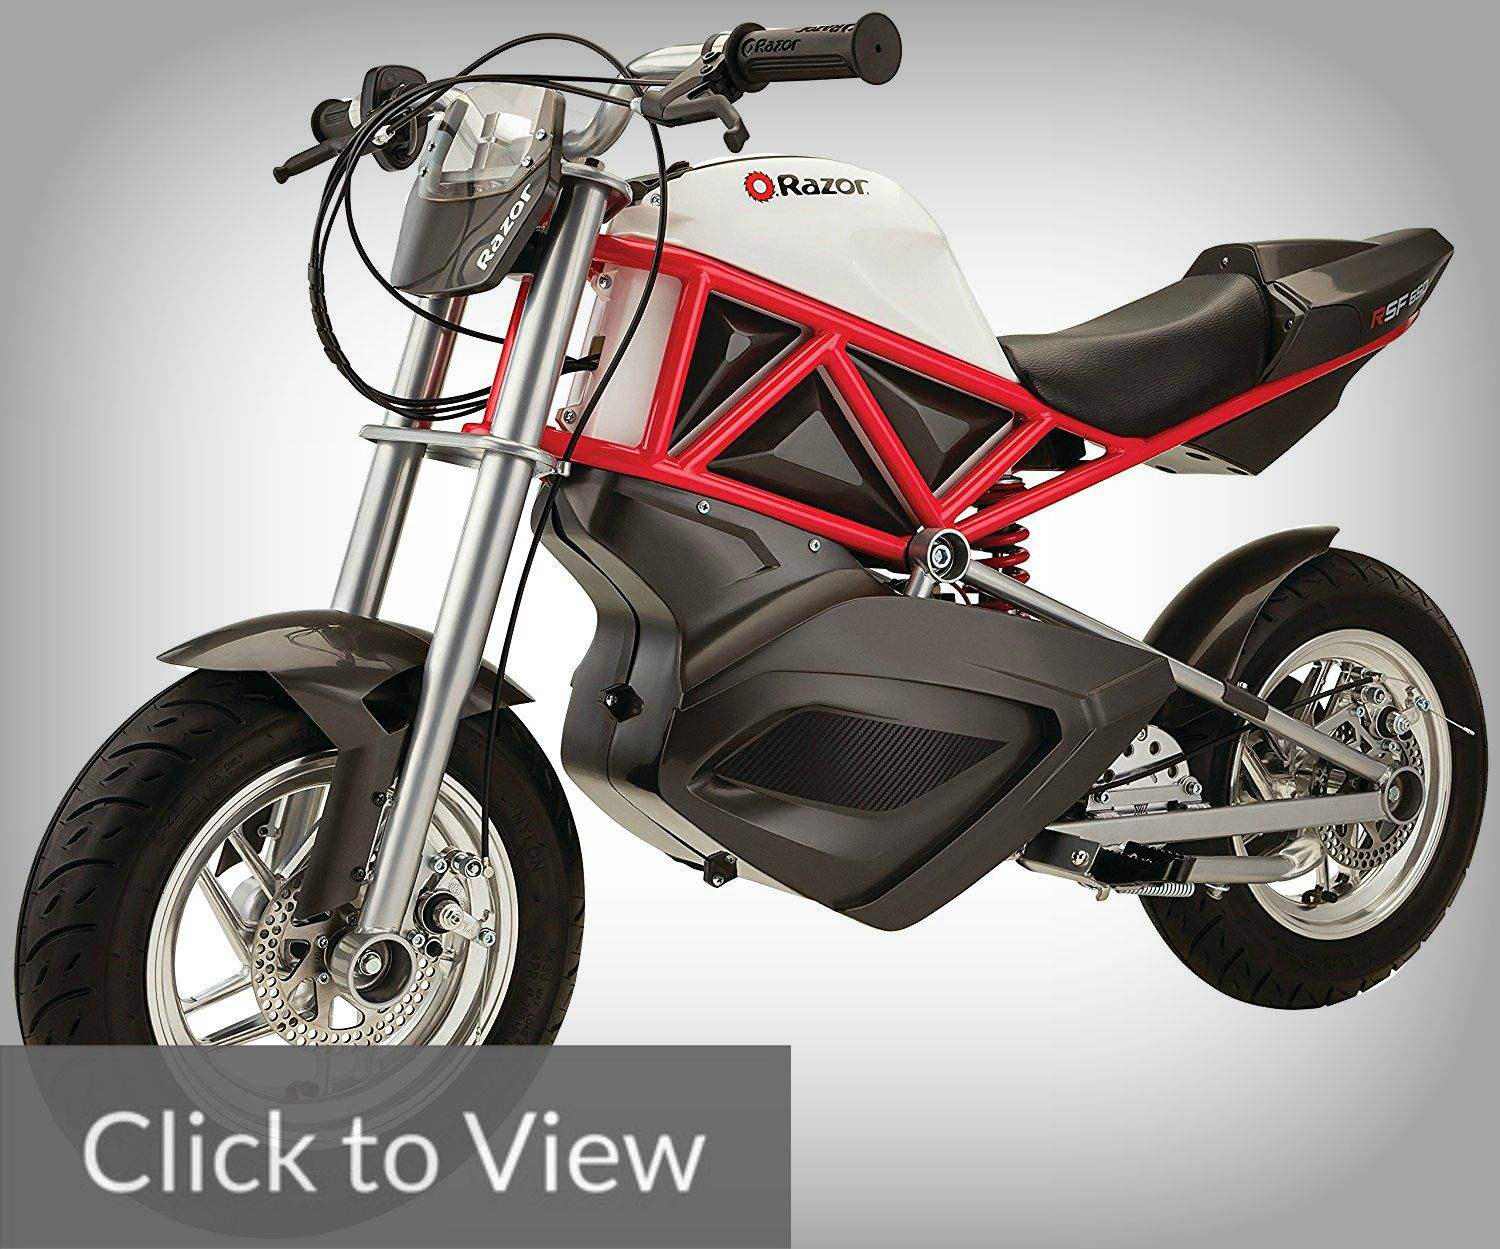 Razor RSF650 Street Bike – High performance e-bike Razor always rocks for  introducing unique and stylish designs for electric bikes.